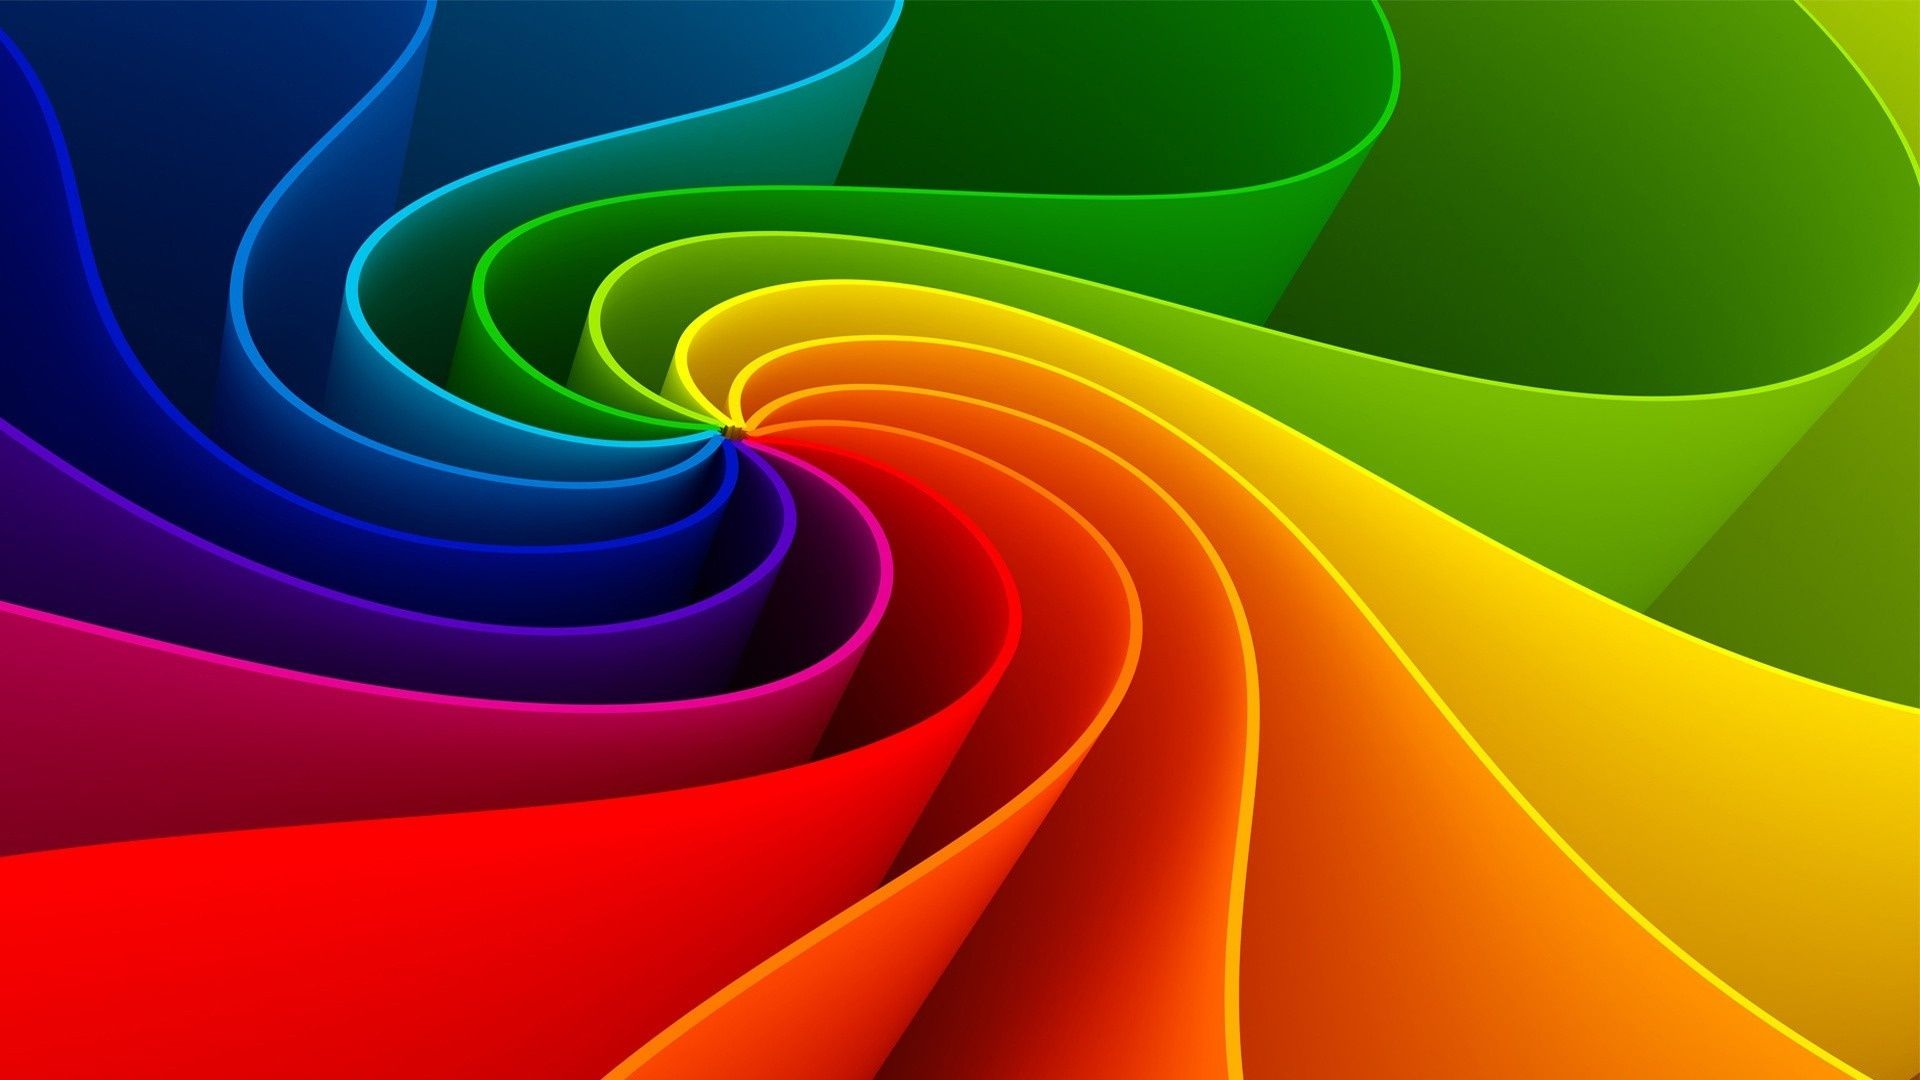 Abstract Wallpaper Rainbow Wallpaper Rainbow Colors Colorful